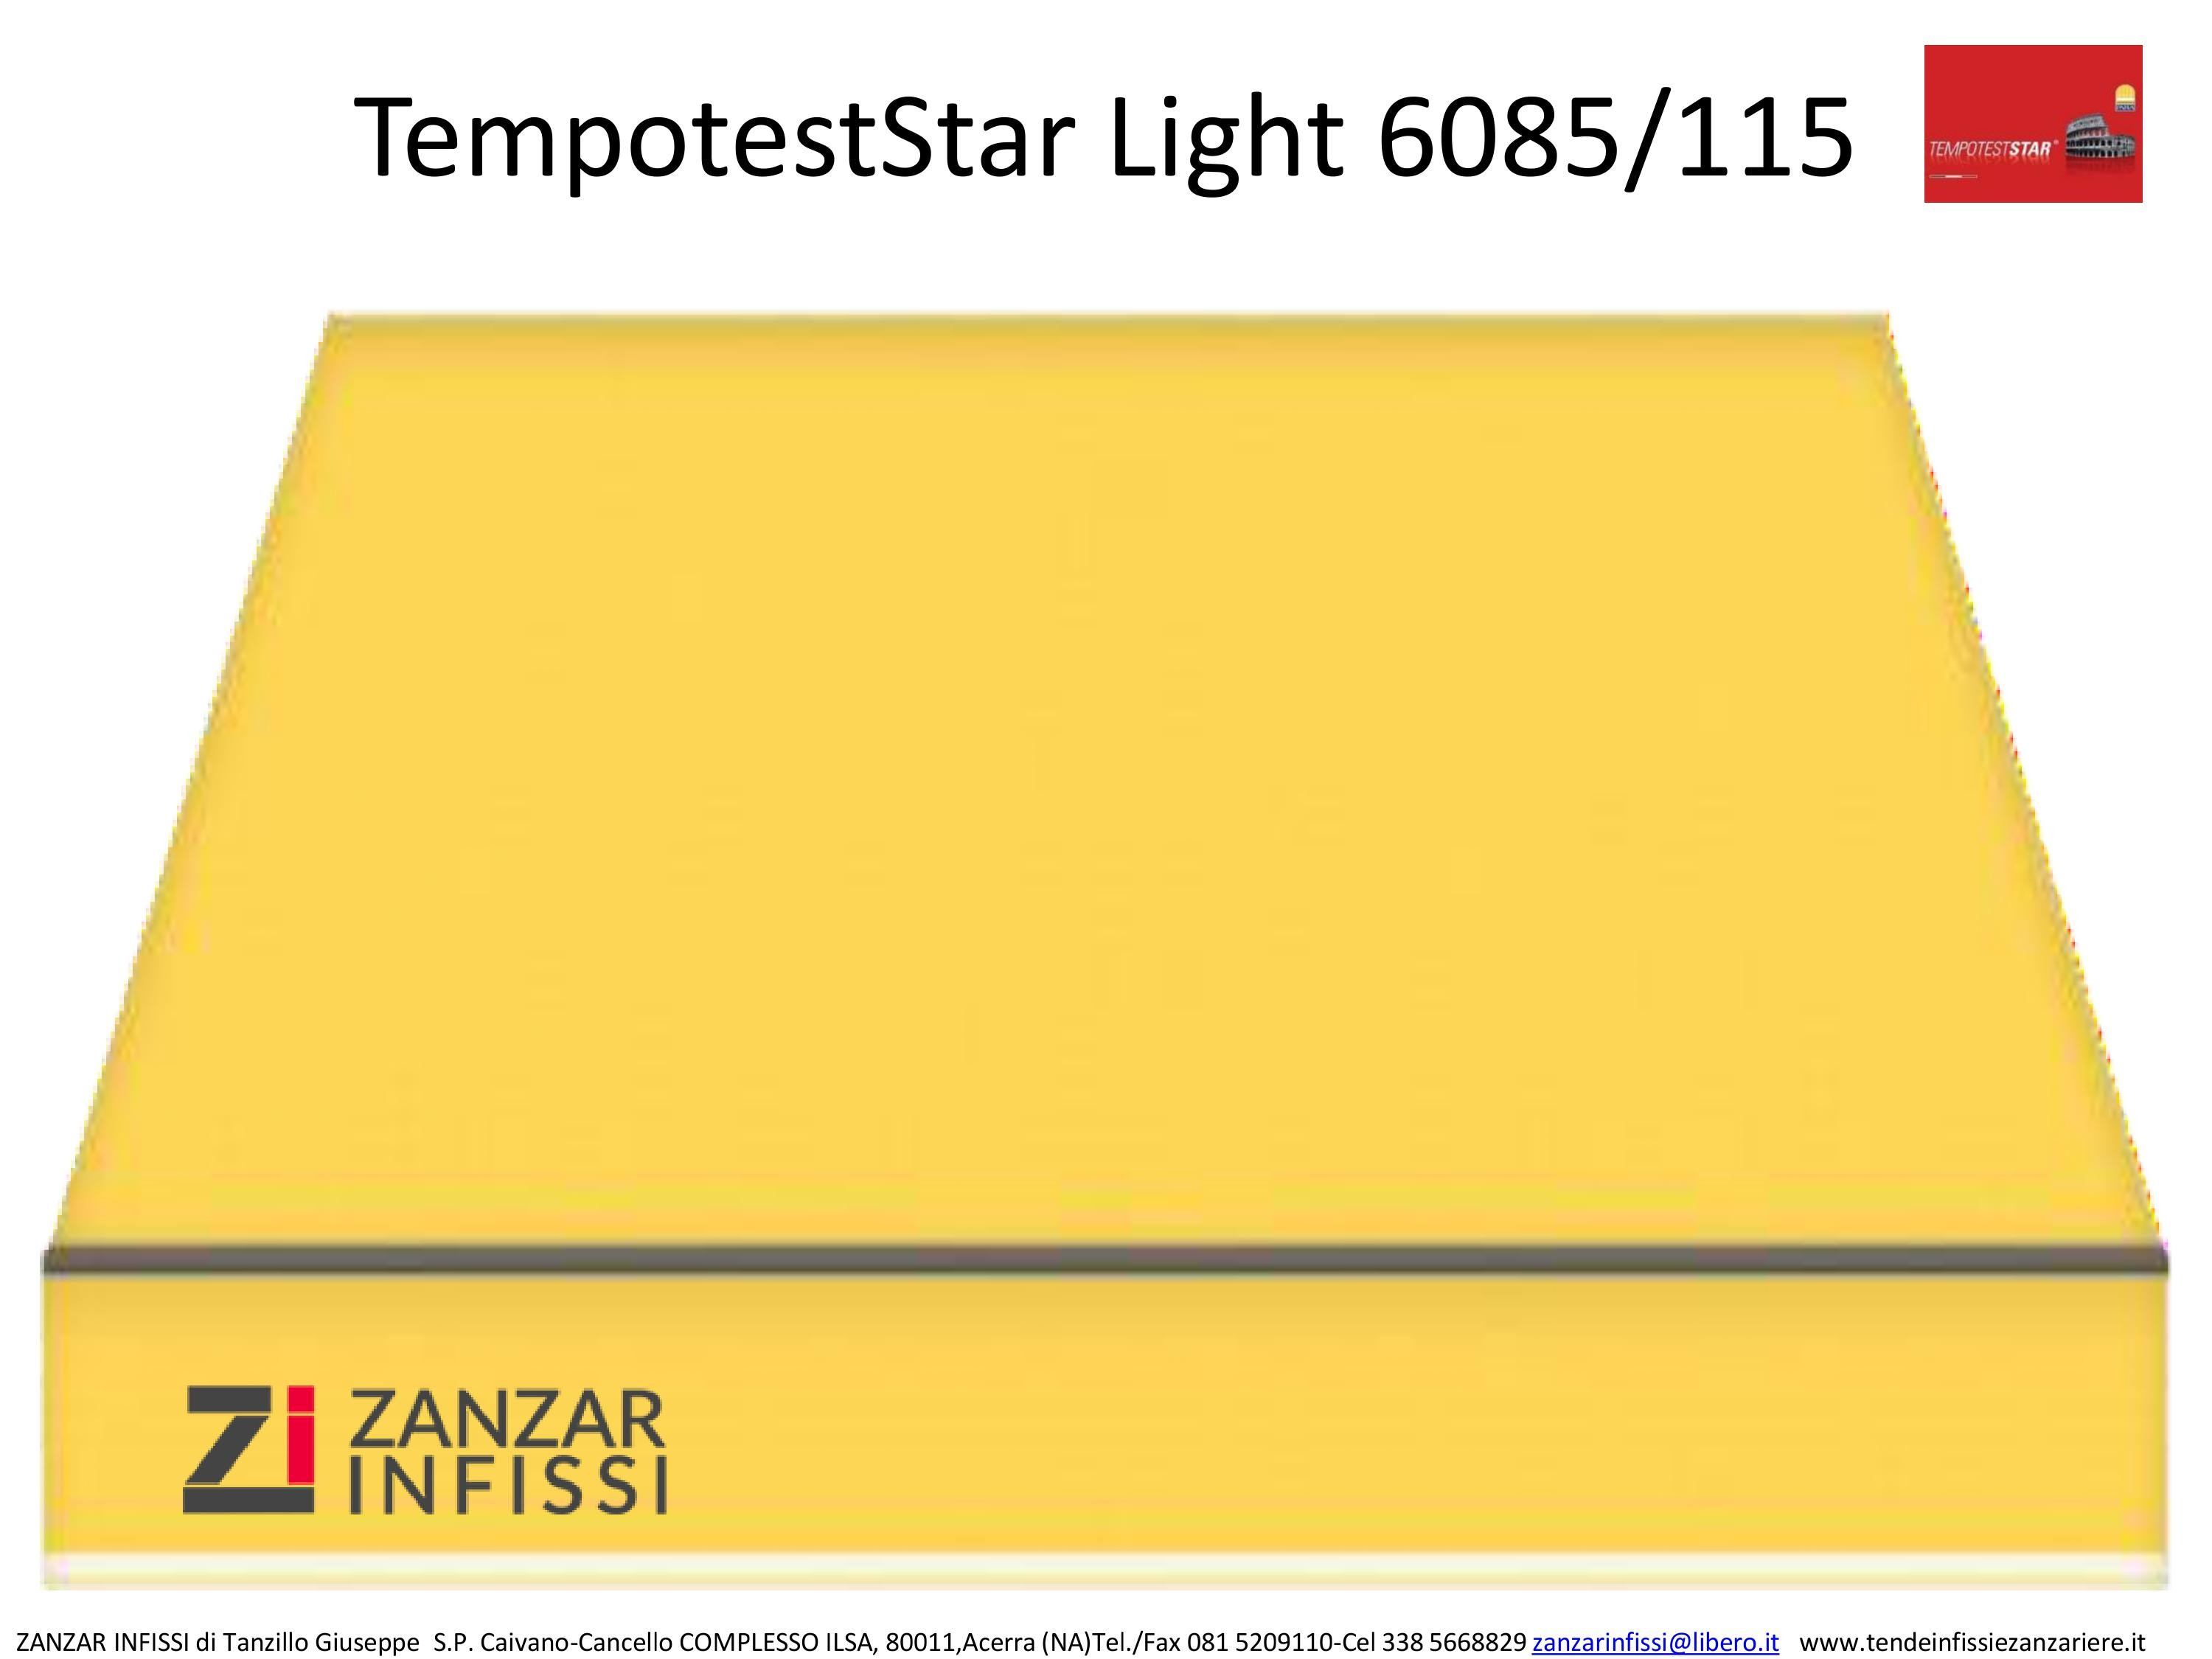 Tempotest star light 6085/115